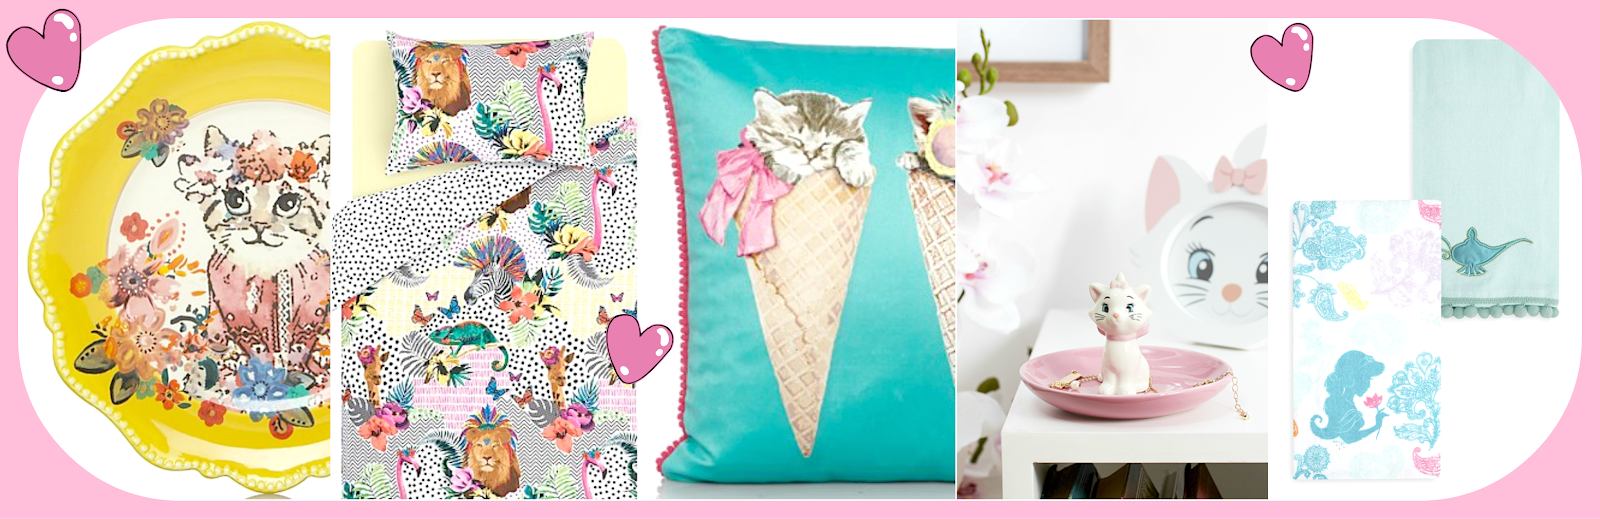 Bows And Pearls: Cute Homeware Wishlist